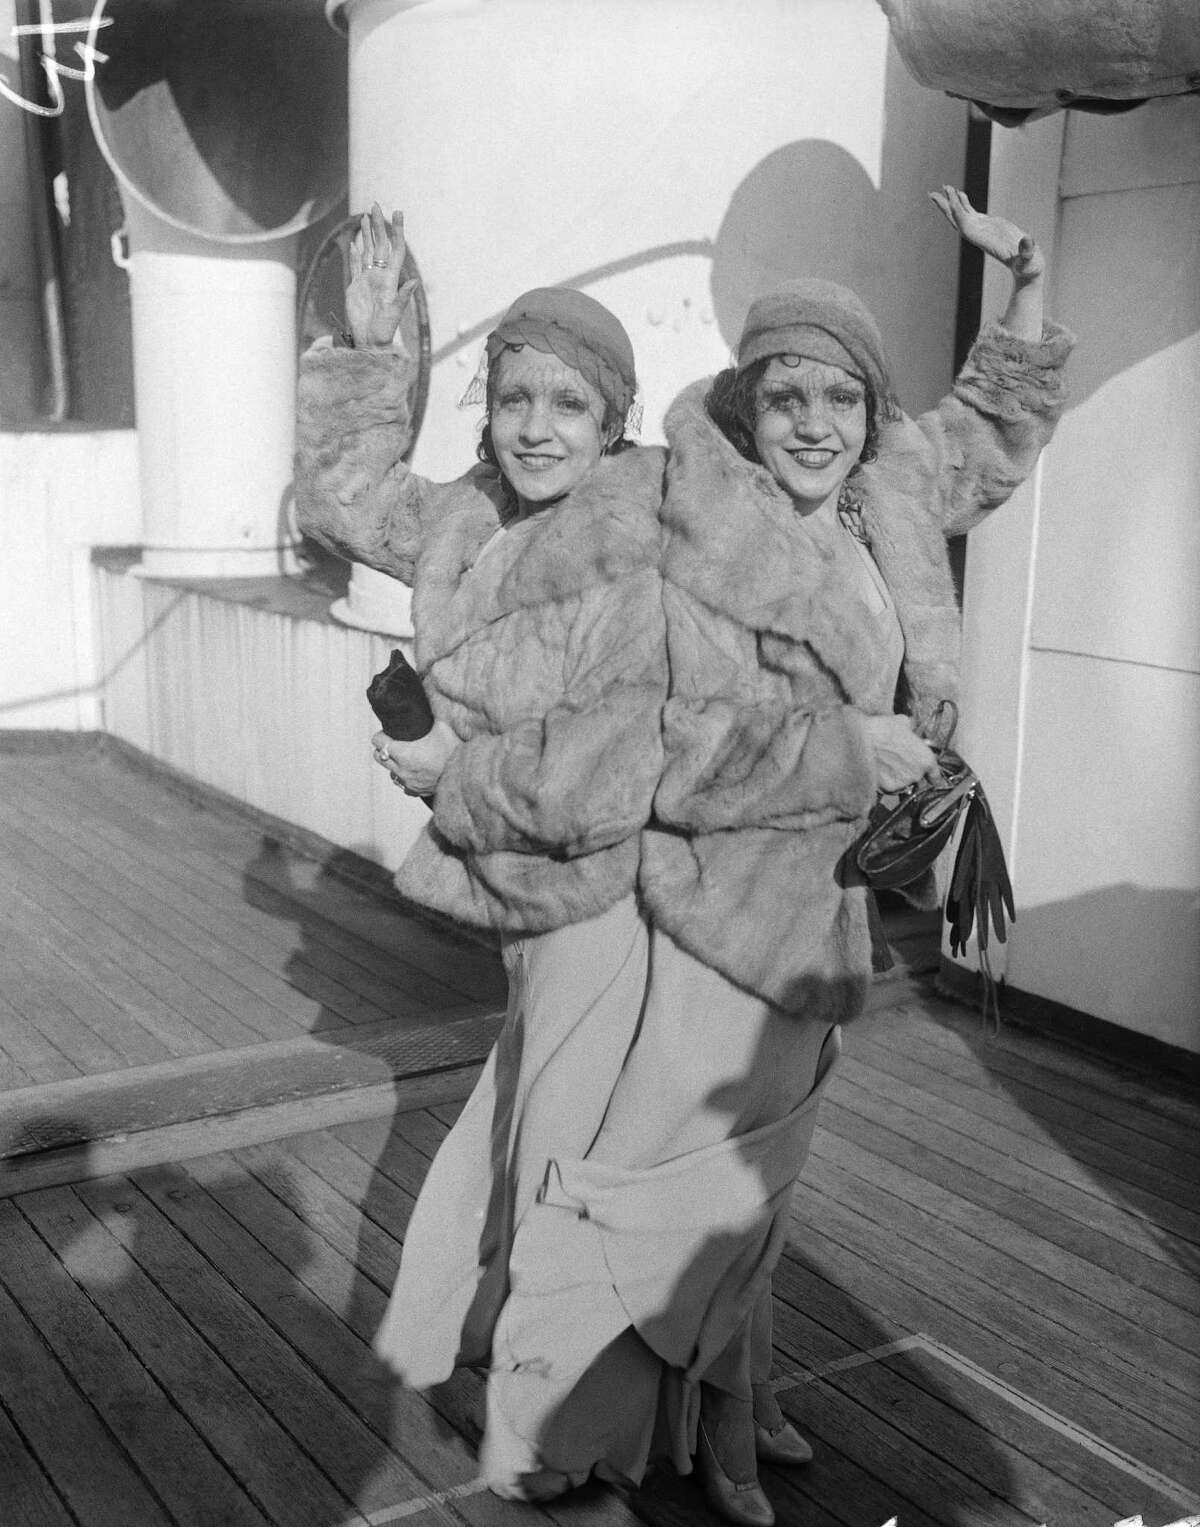 Violet and Daisy Hilton, conjoined twins, are pictured upon their arrival in New York, Oct. 6, 1933, aboard the Aquitania. Although they have been joined together since birth and cannot be separated, they say they are engaged and will have a double wedding within a year. Daisy claims to be engaged to Jack Lewis, an orchestra leader in Chicago and Violet reports that her fiancee is a prominent English boxer, but declined to reveal his name.